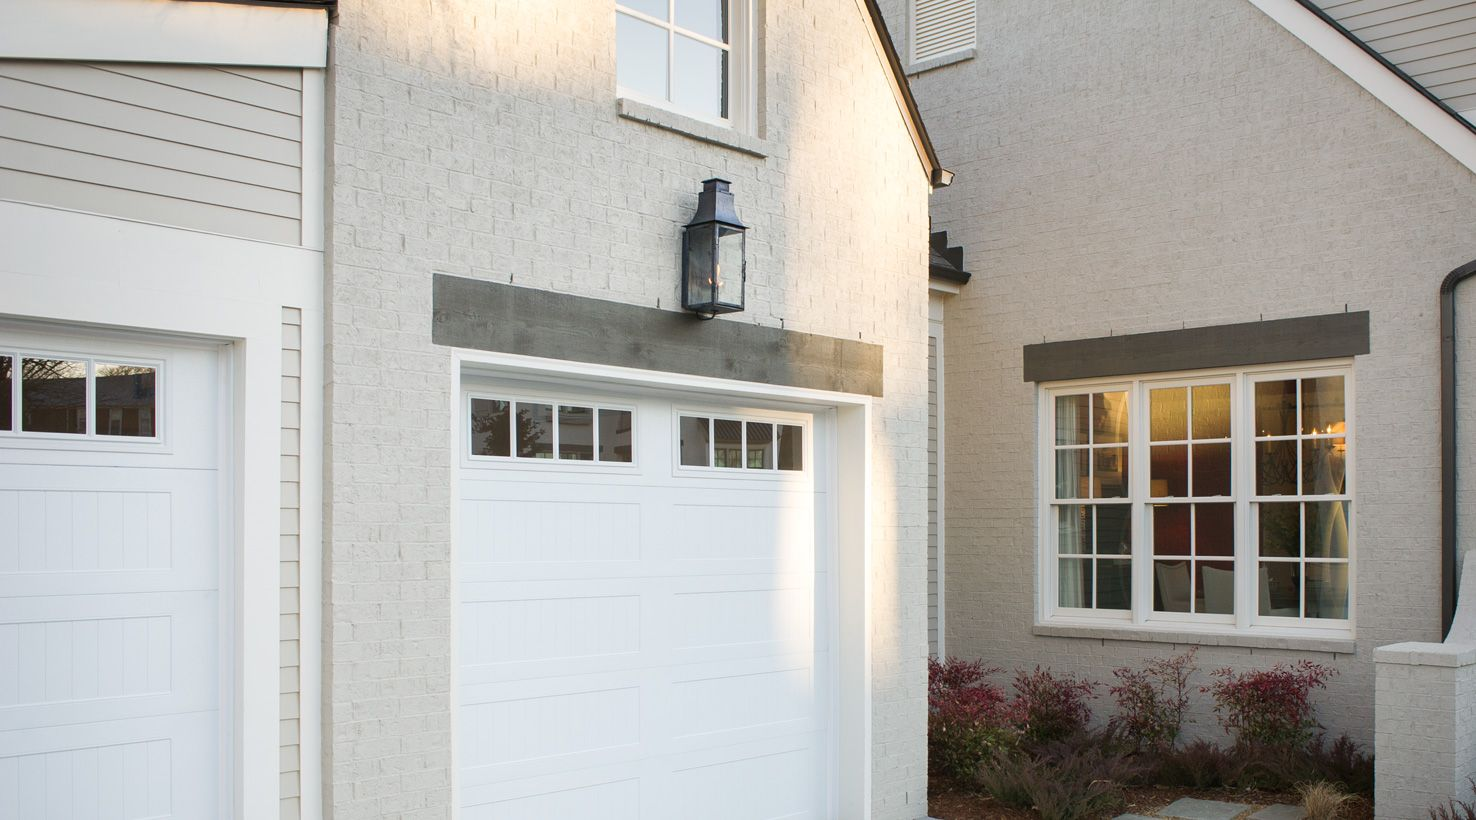 Hgtv smart home 2014 garage exterior sw 7028 - Exterior house paint colors 2014 ...